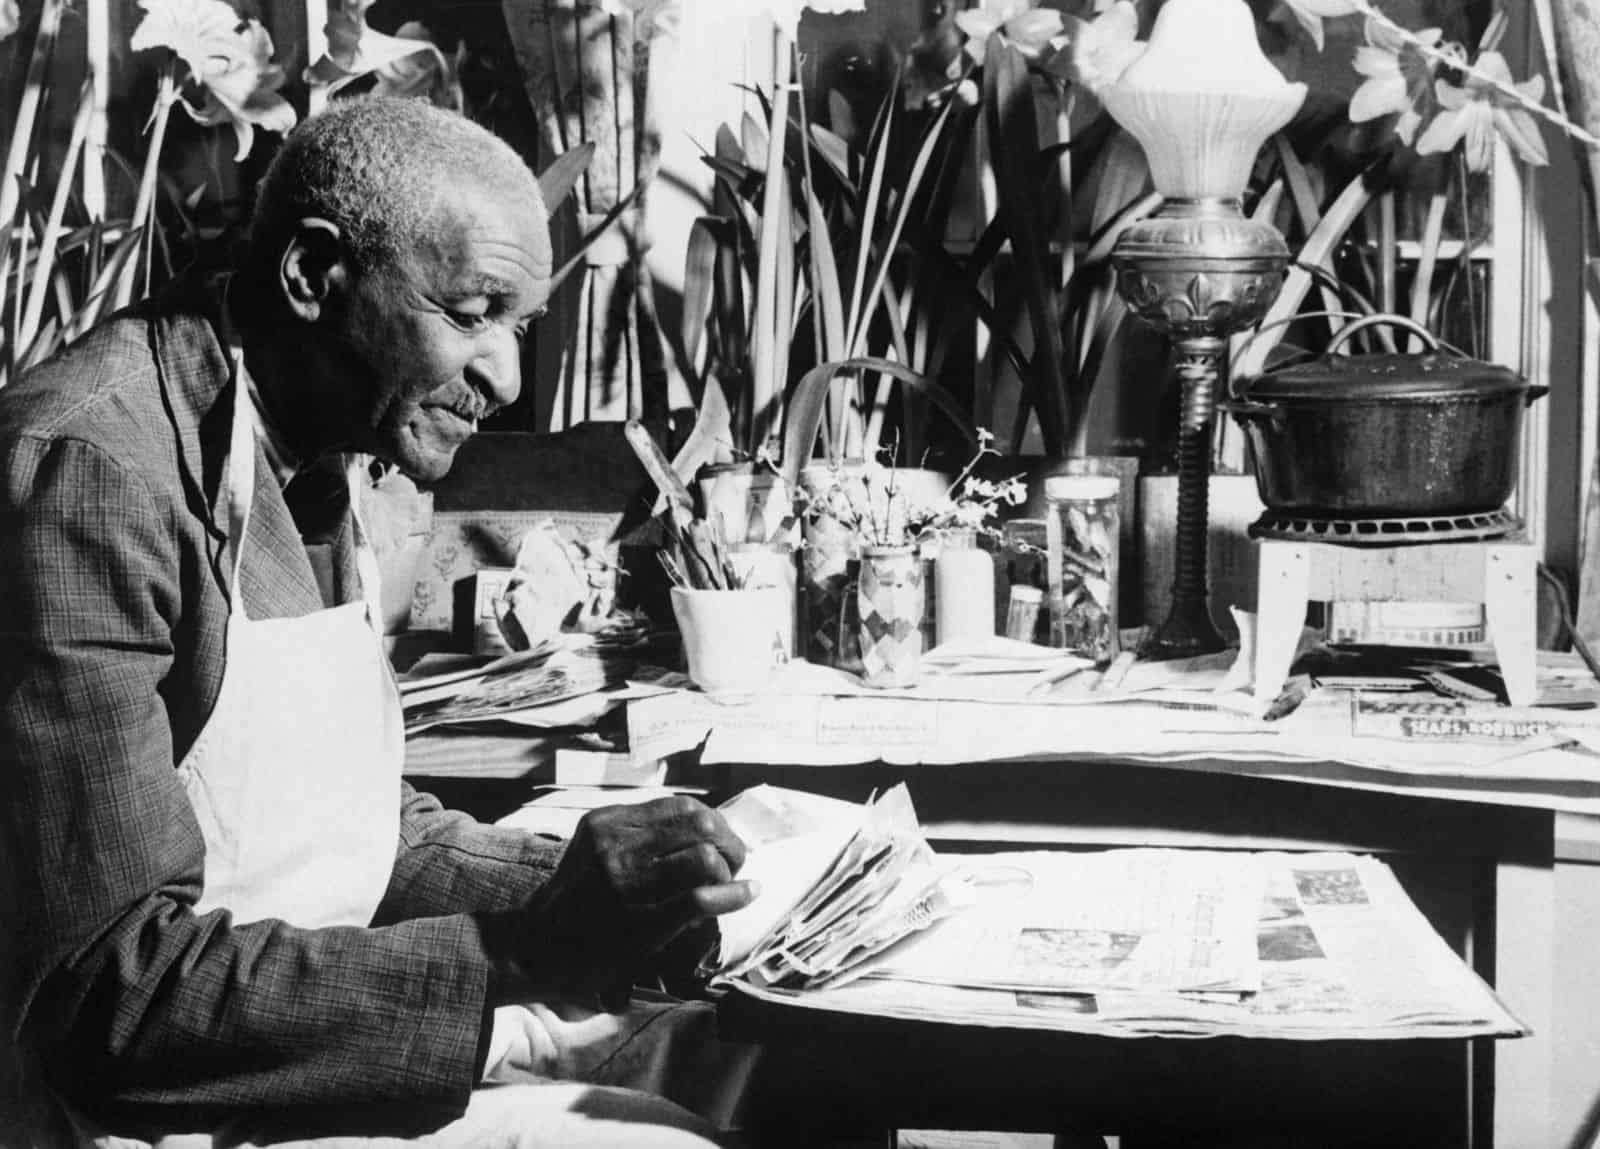 Photograph of George Washington Carver